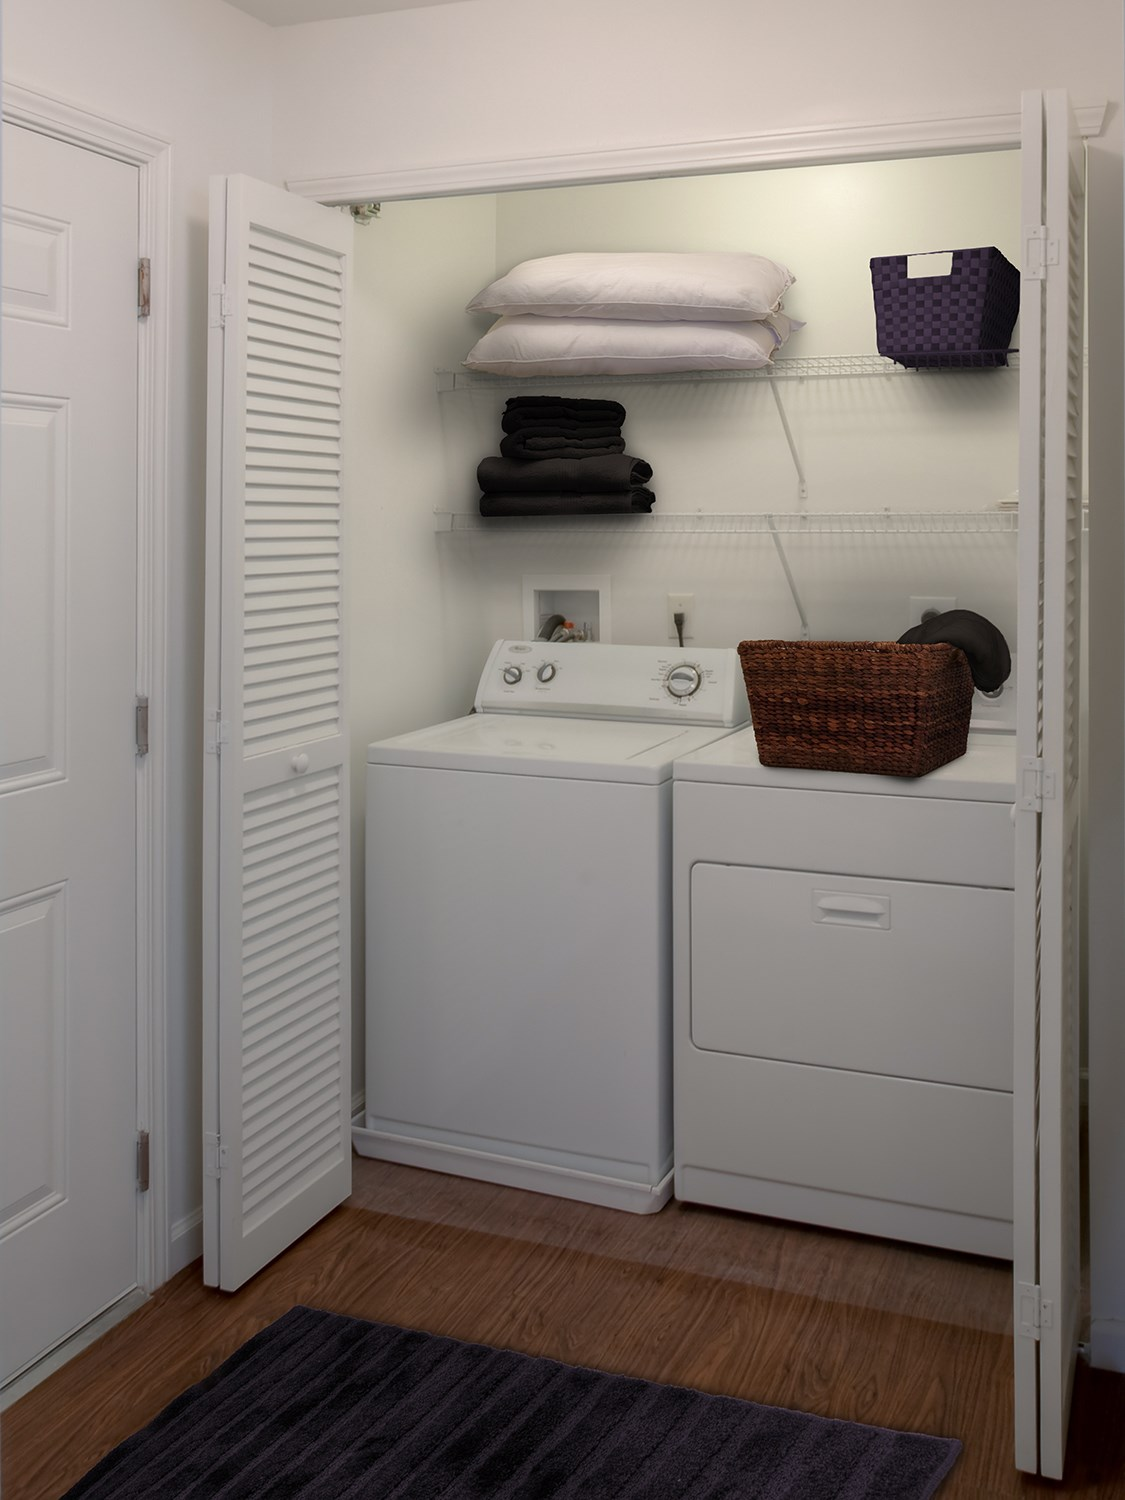 In-Unit Laundry at Enclave at Charles Pond Apartments in Coram, NY